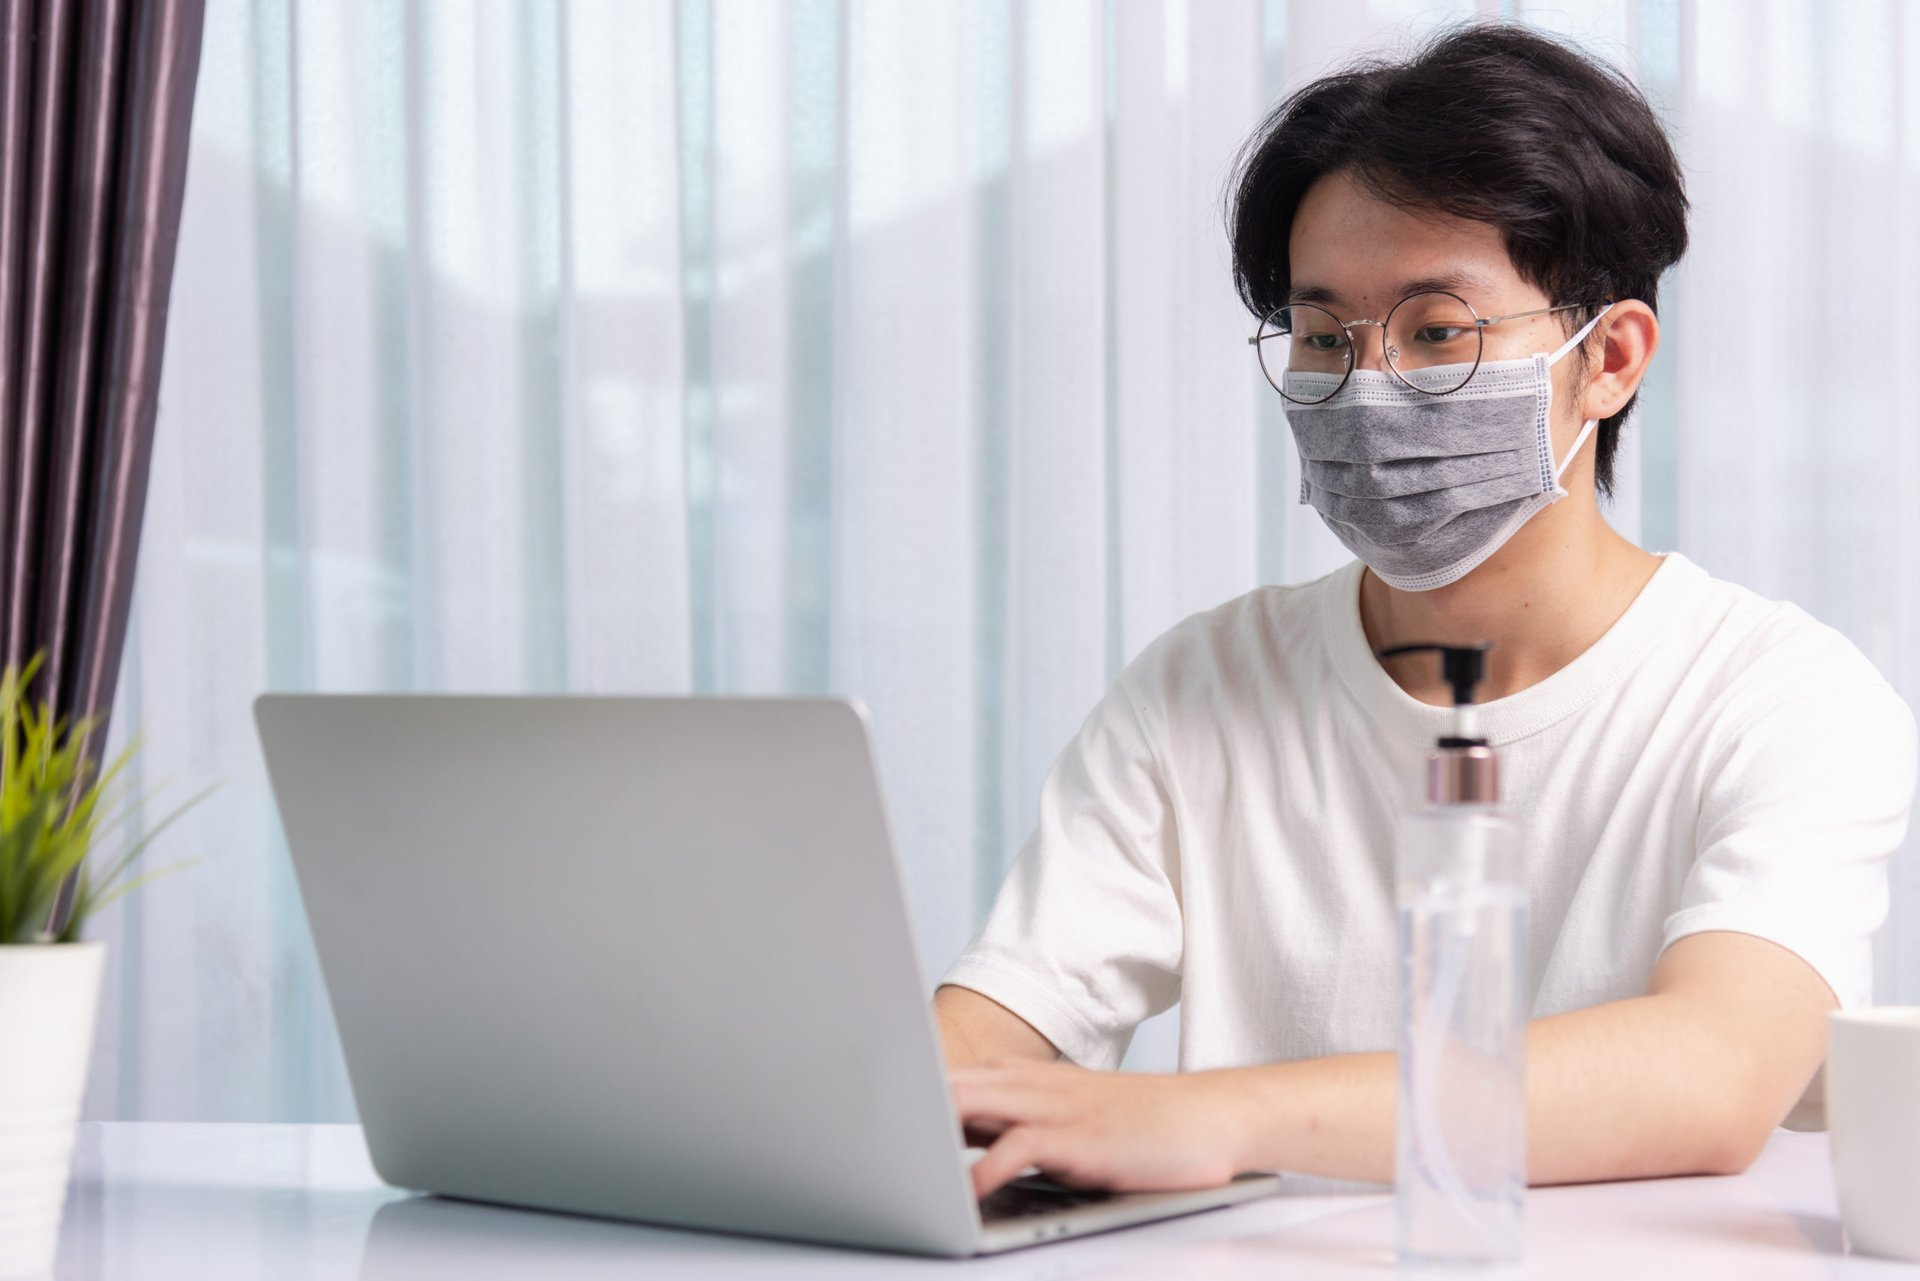 Man looking for remote job during pandemic